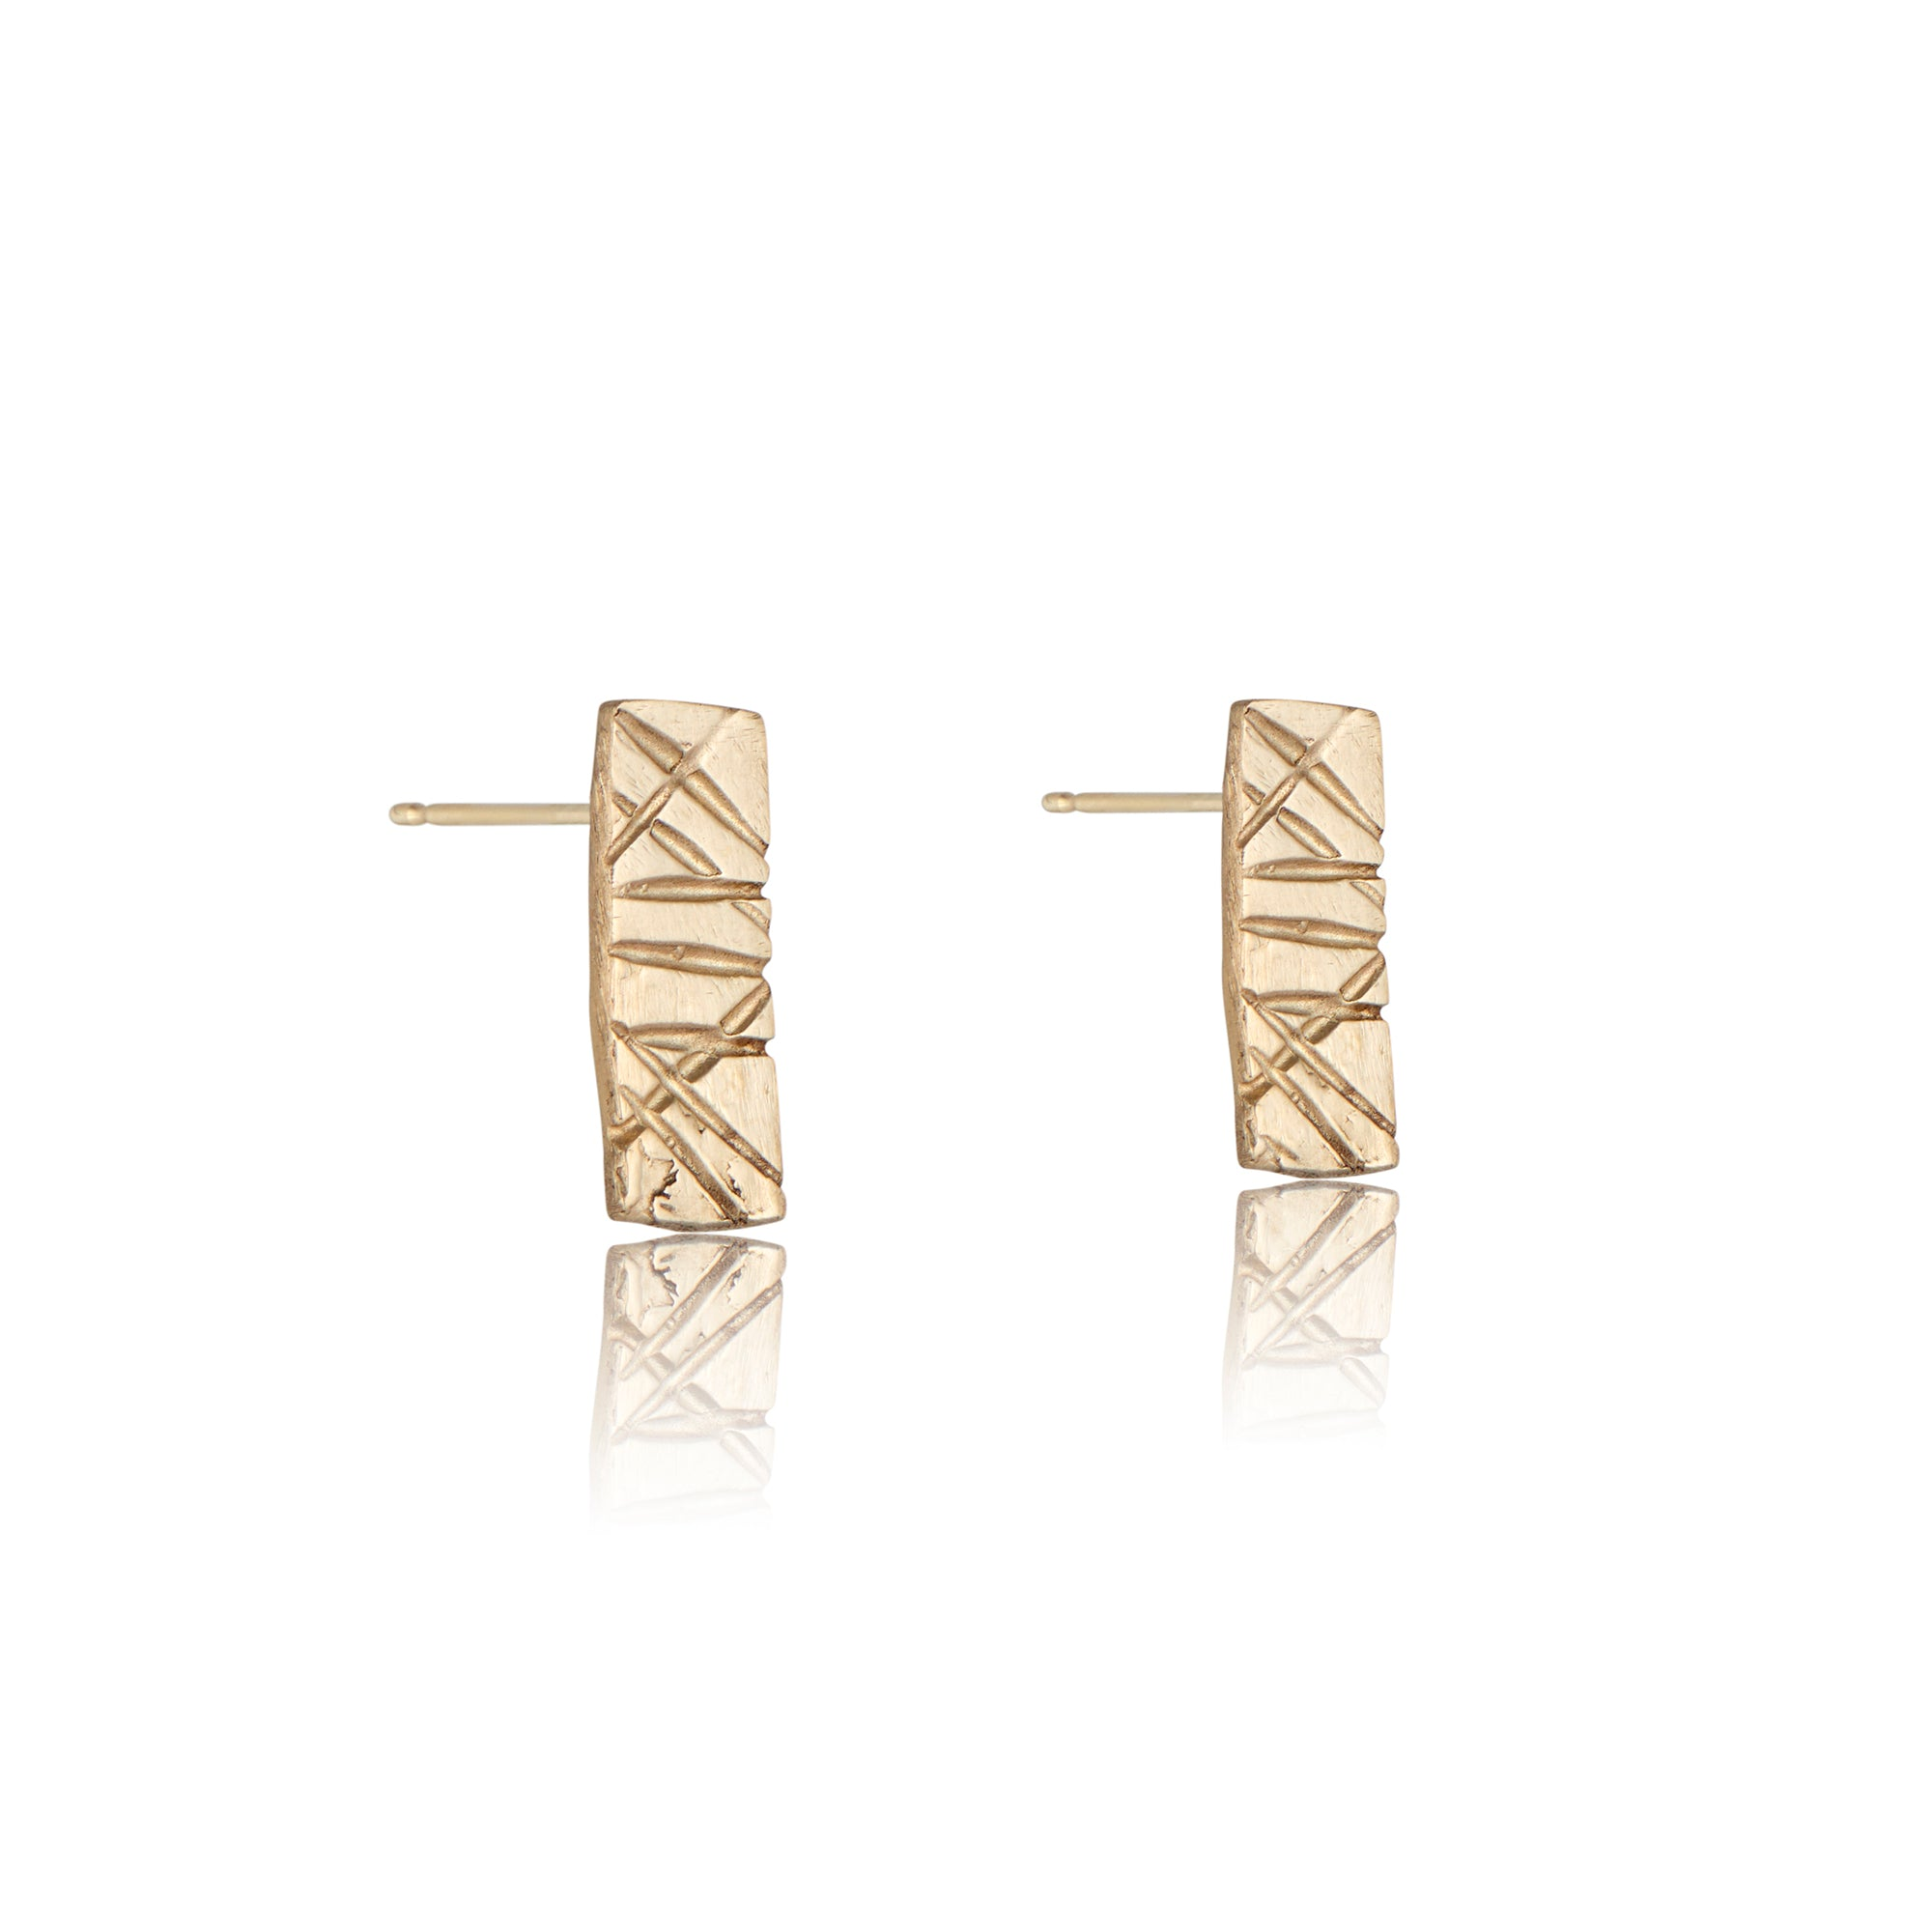 Wear them to work, wear them to a black tie event, wear them anywhere! The Jackie Stud designed by Natalie McMillan is a super versatile pair of earrings that can be worn with pretty much anything.